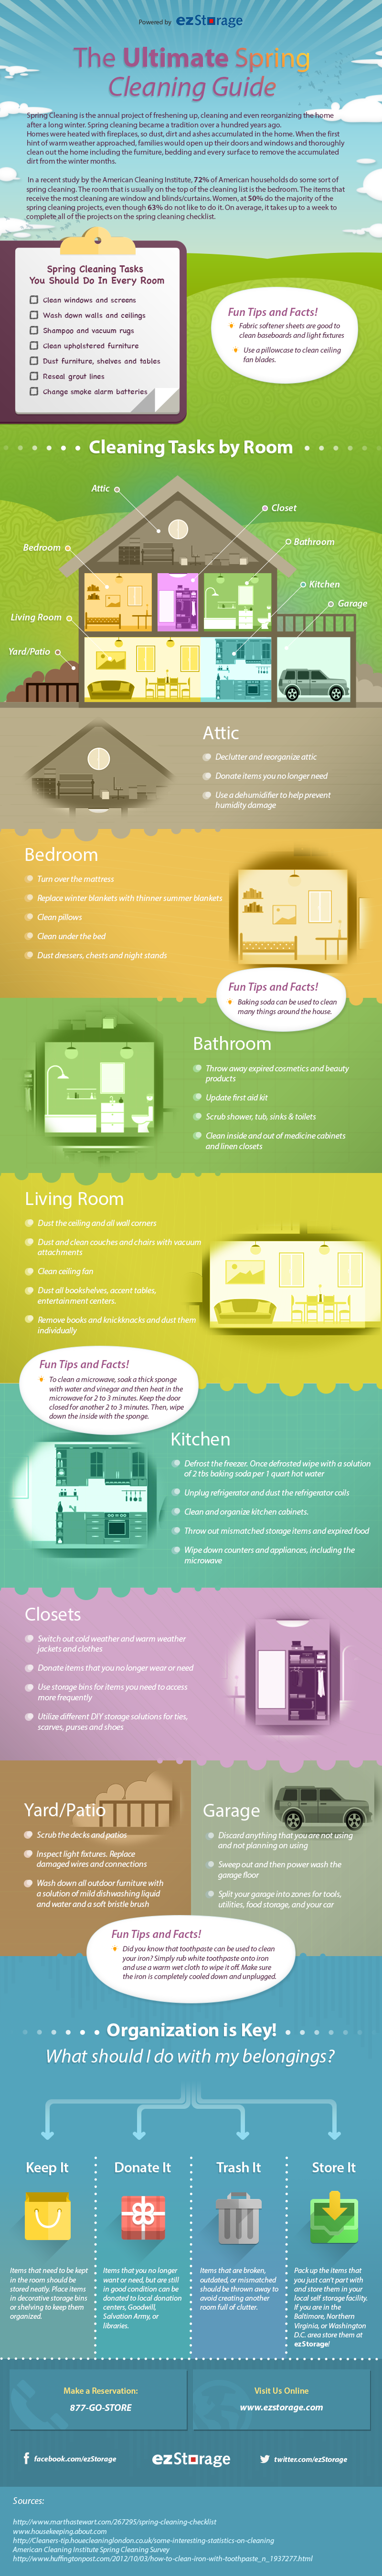 Room-by-Room Spring Cleaning Tips from ezStorage!